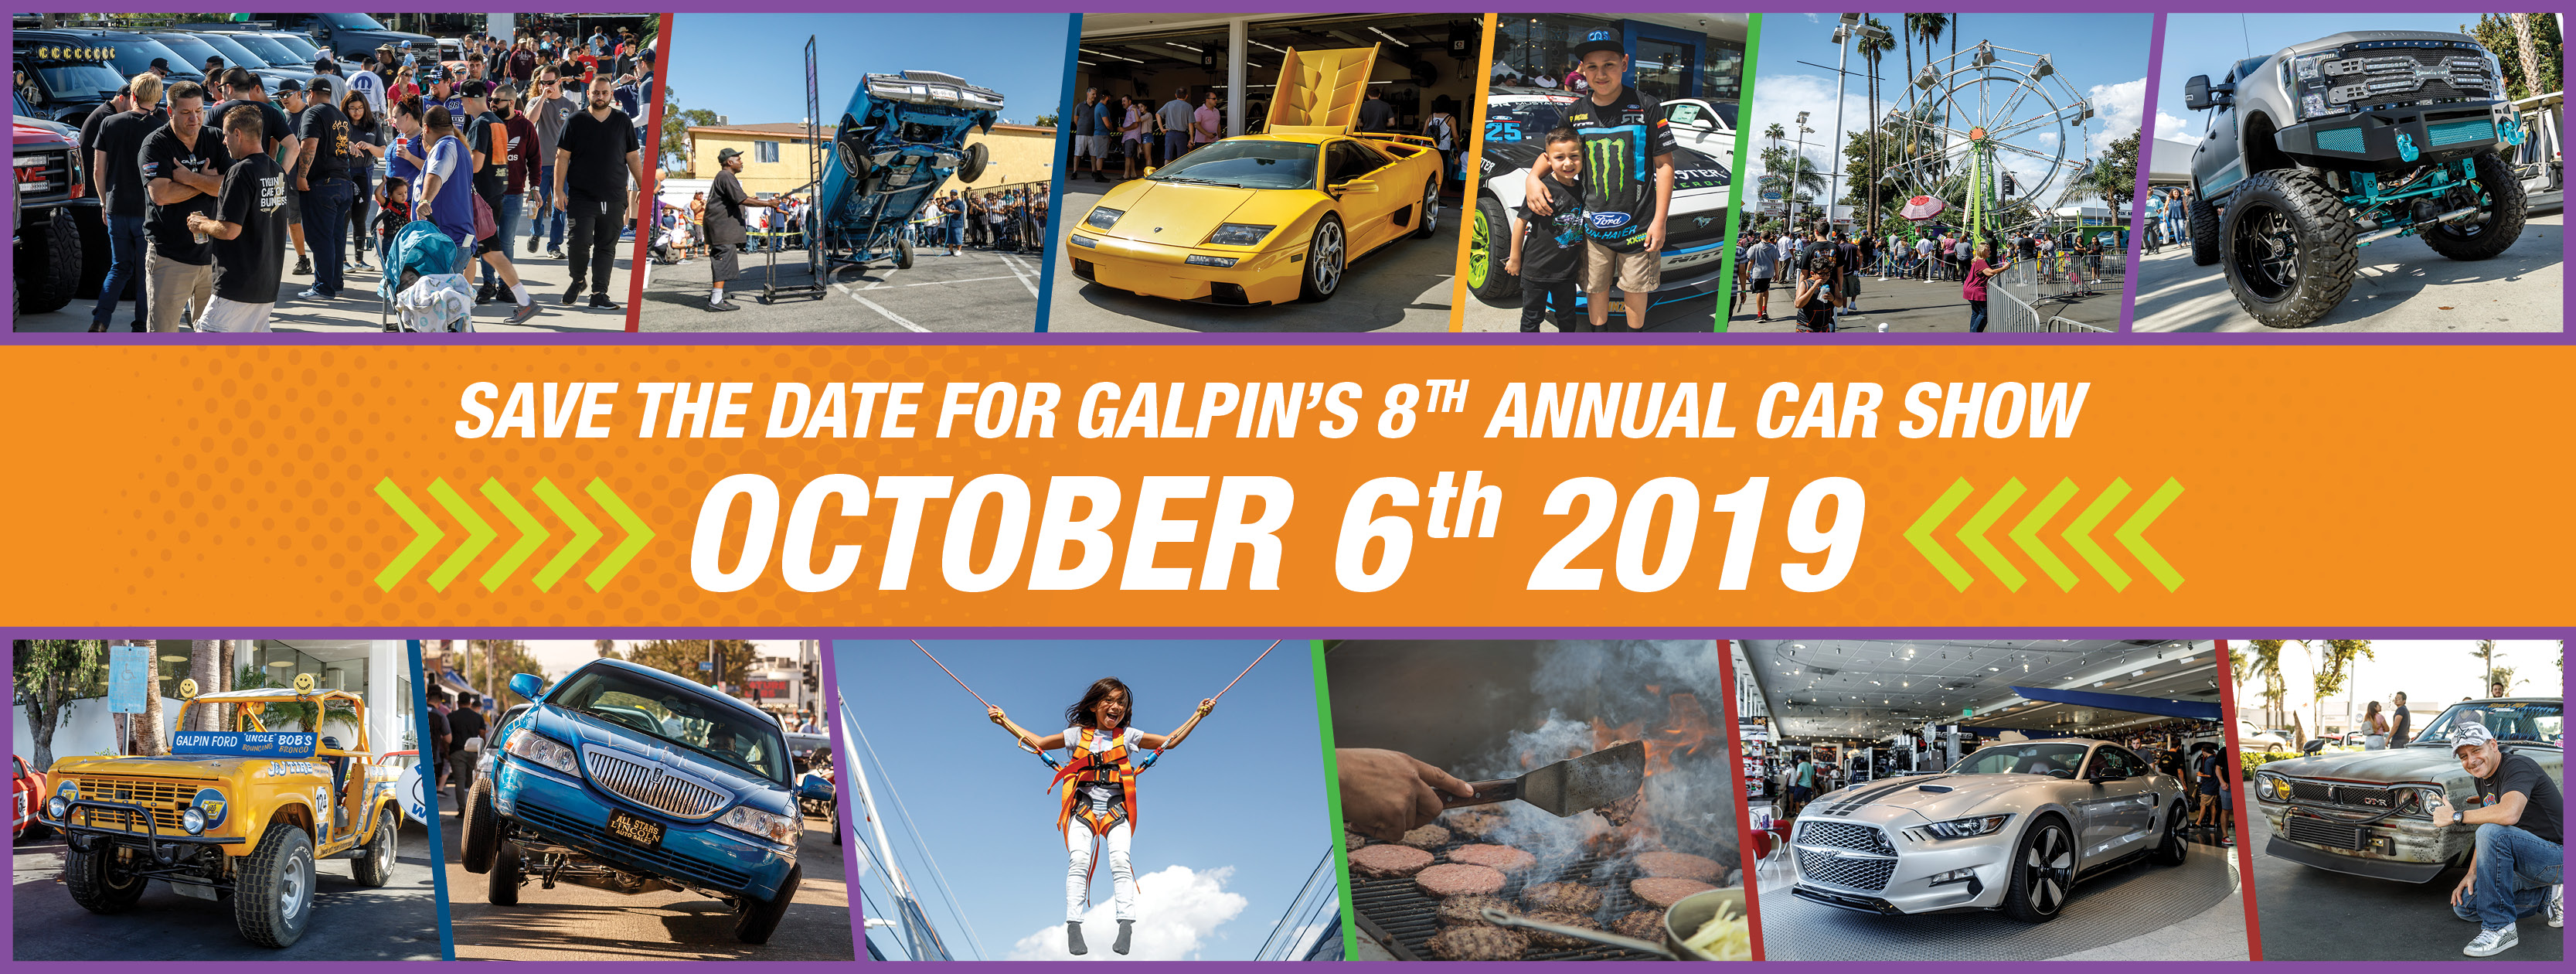 Save the Date for Galpin's 8th Annual Car show october 6th 2019